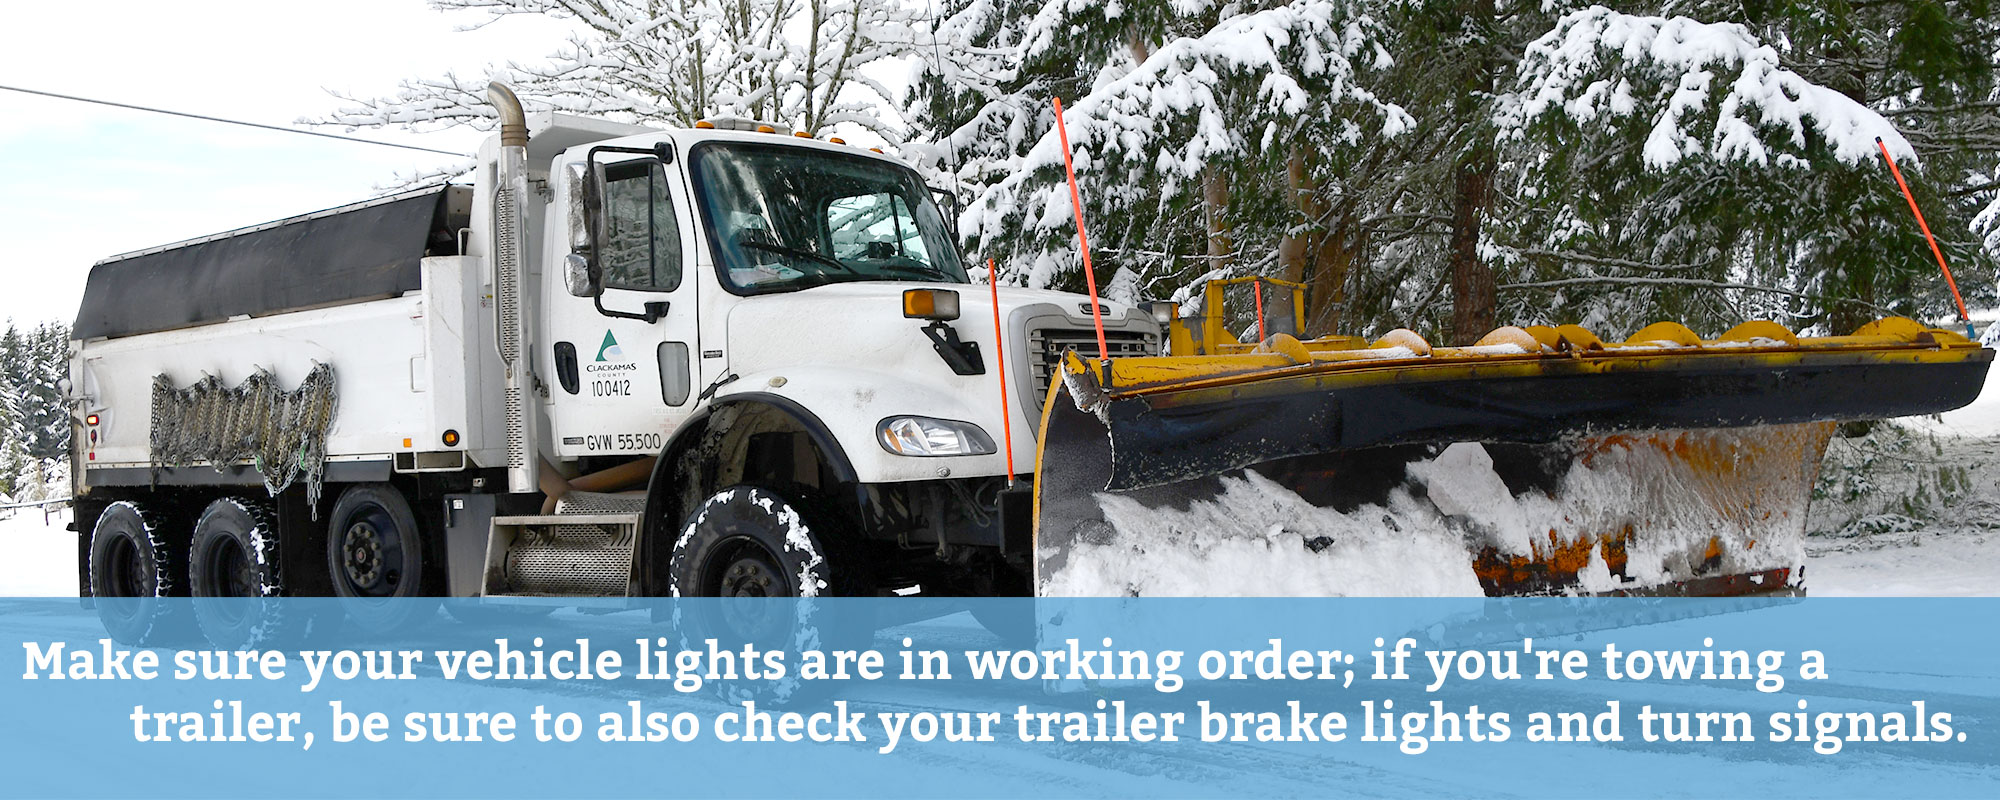 Make sure your vehicile lights are in working order; if you're towing a trailer, be sure to also check your trailer brake lights and turn signals.